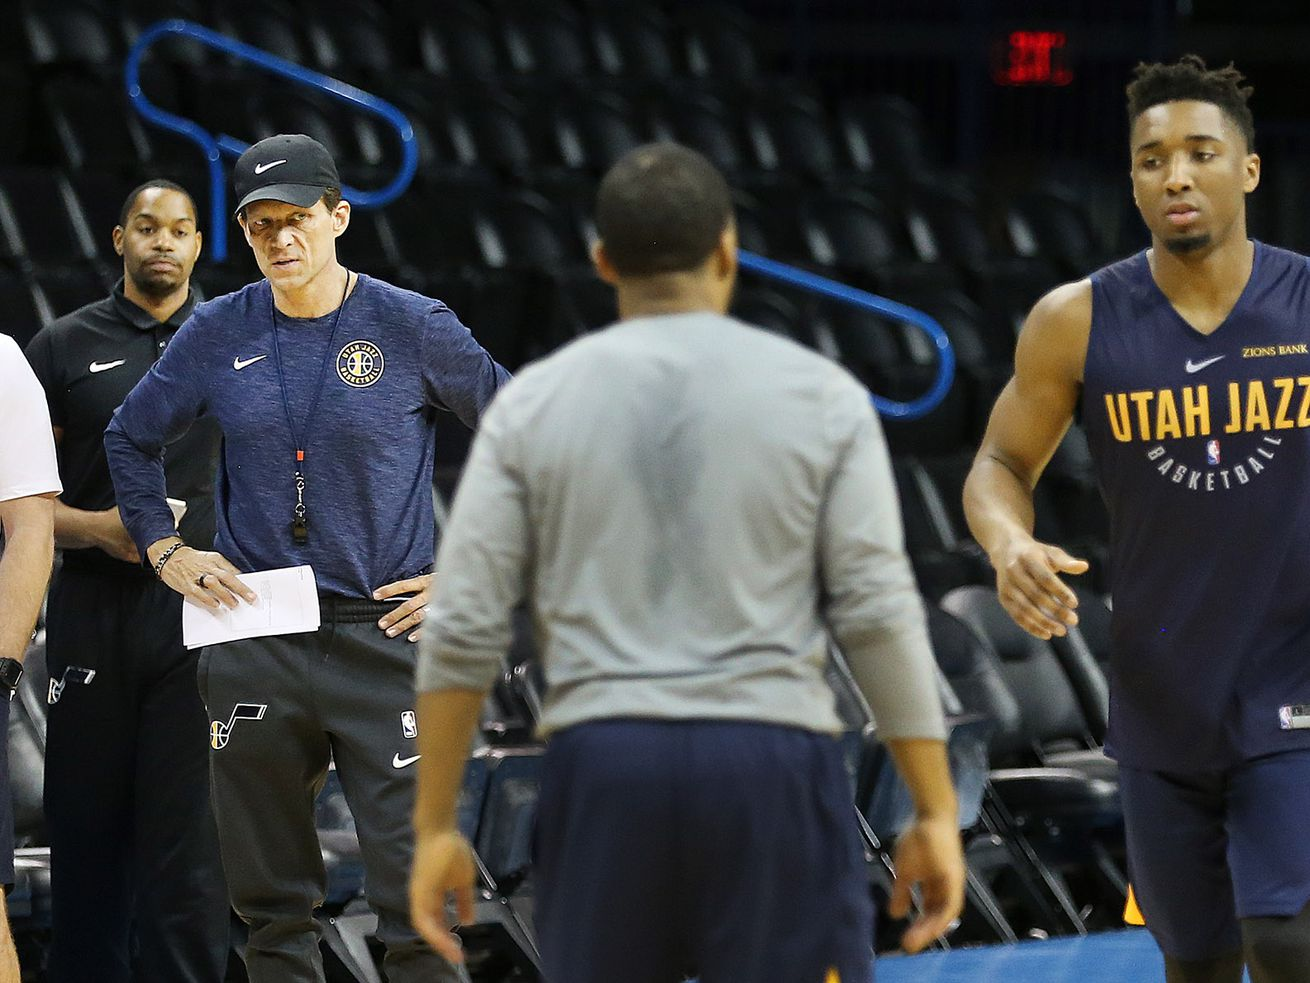 Utah Jazz practice in Orlando becomes more structured as players acclimate to bubble